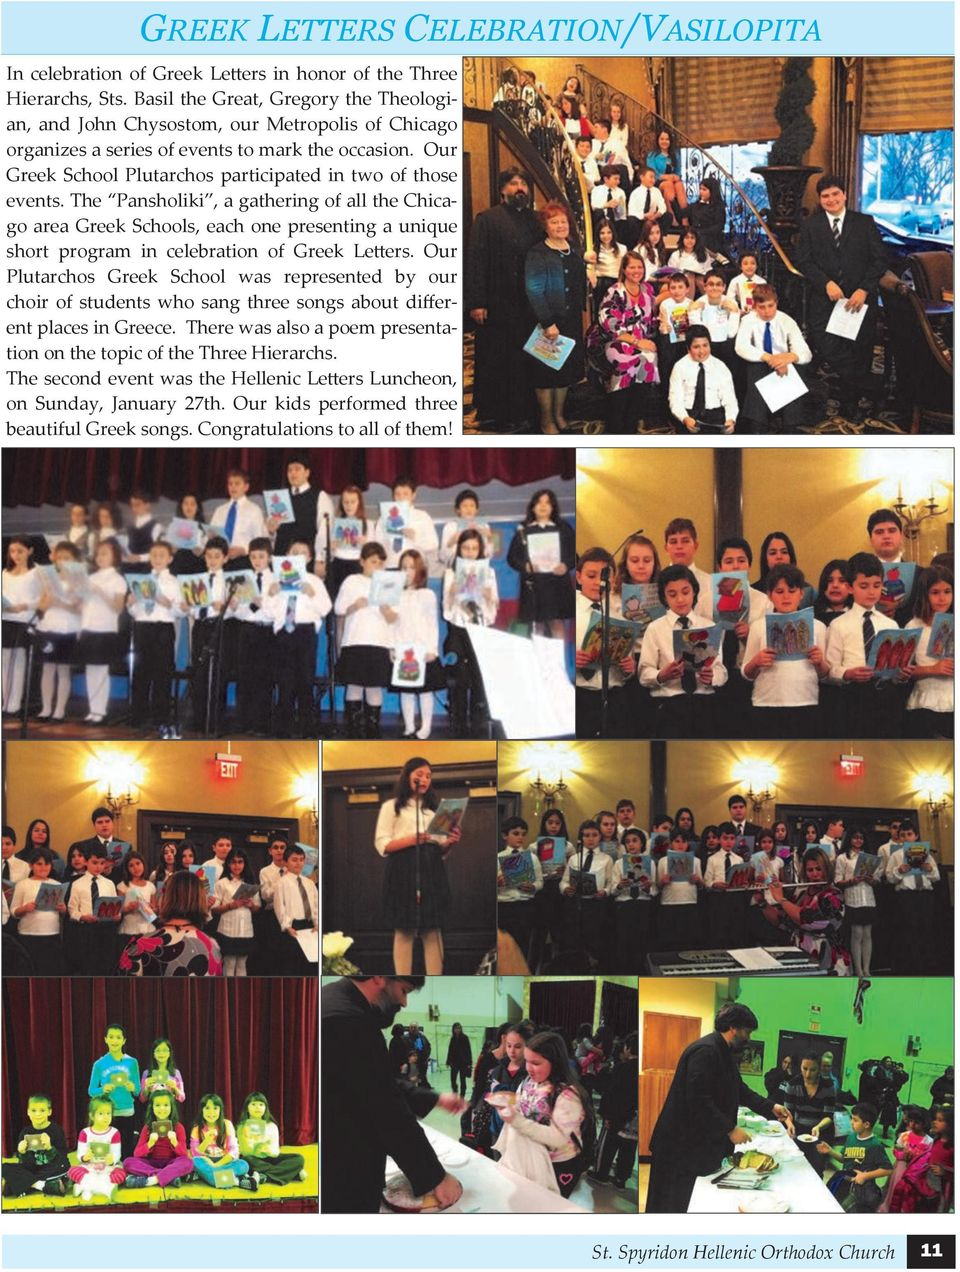 Our Greek School Plutarchos participated in two of those events.